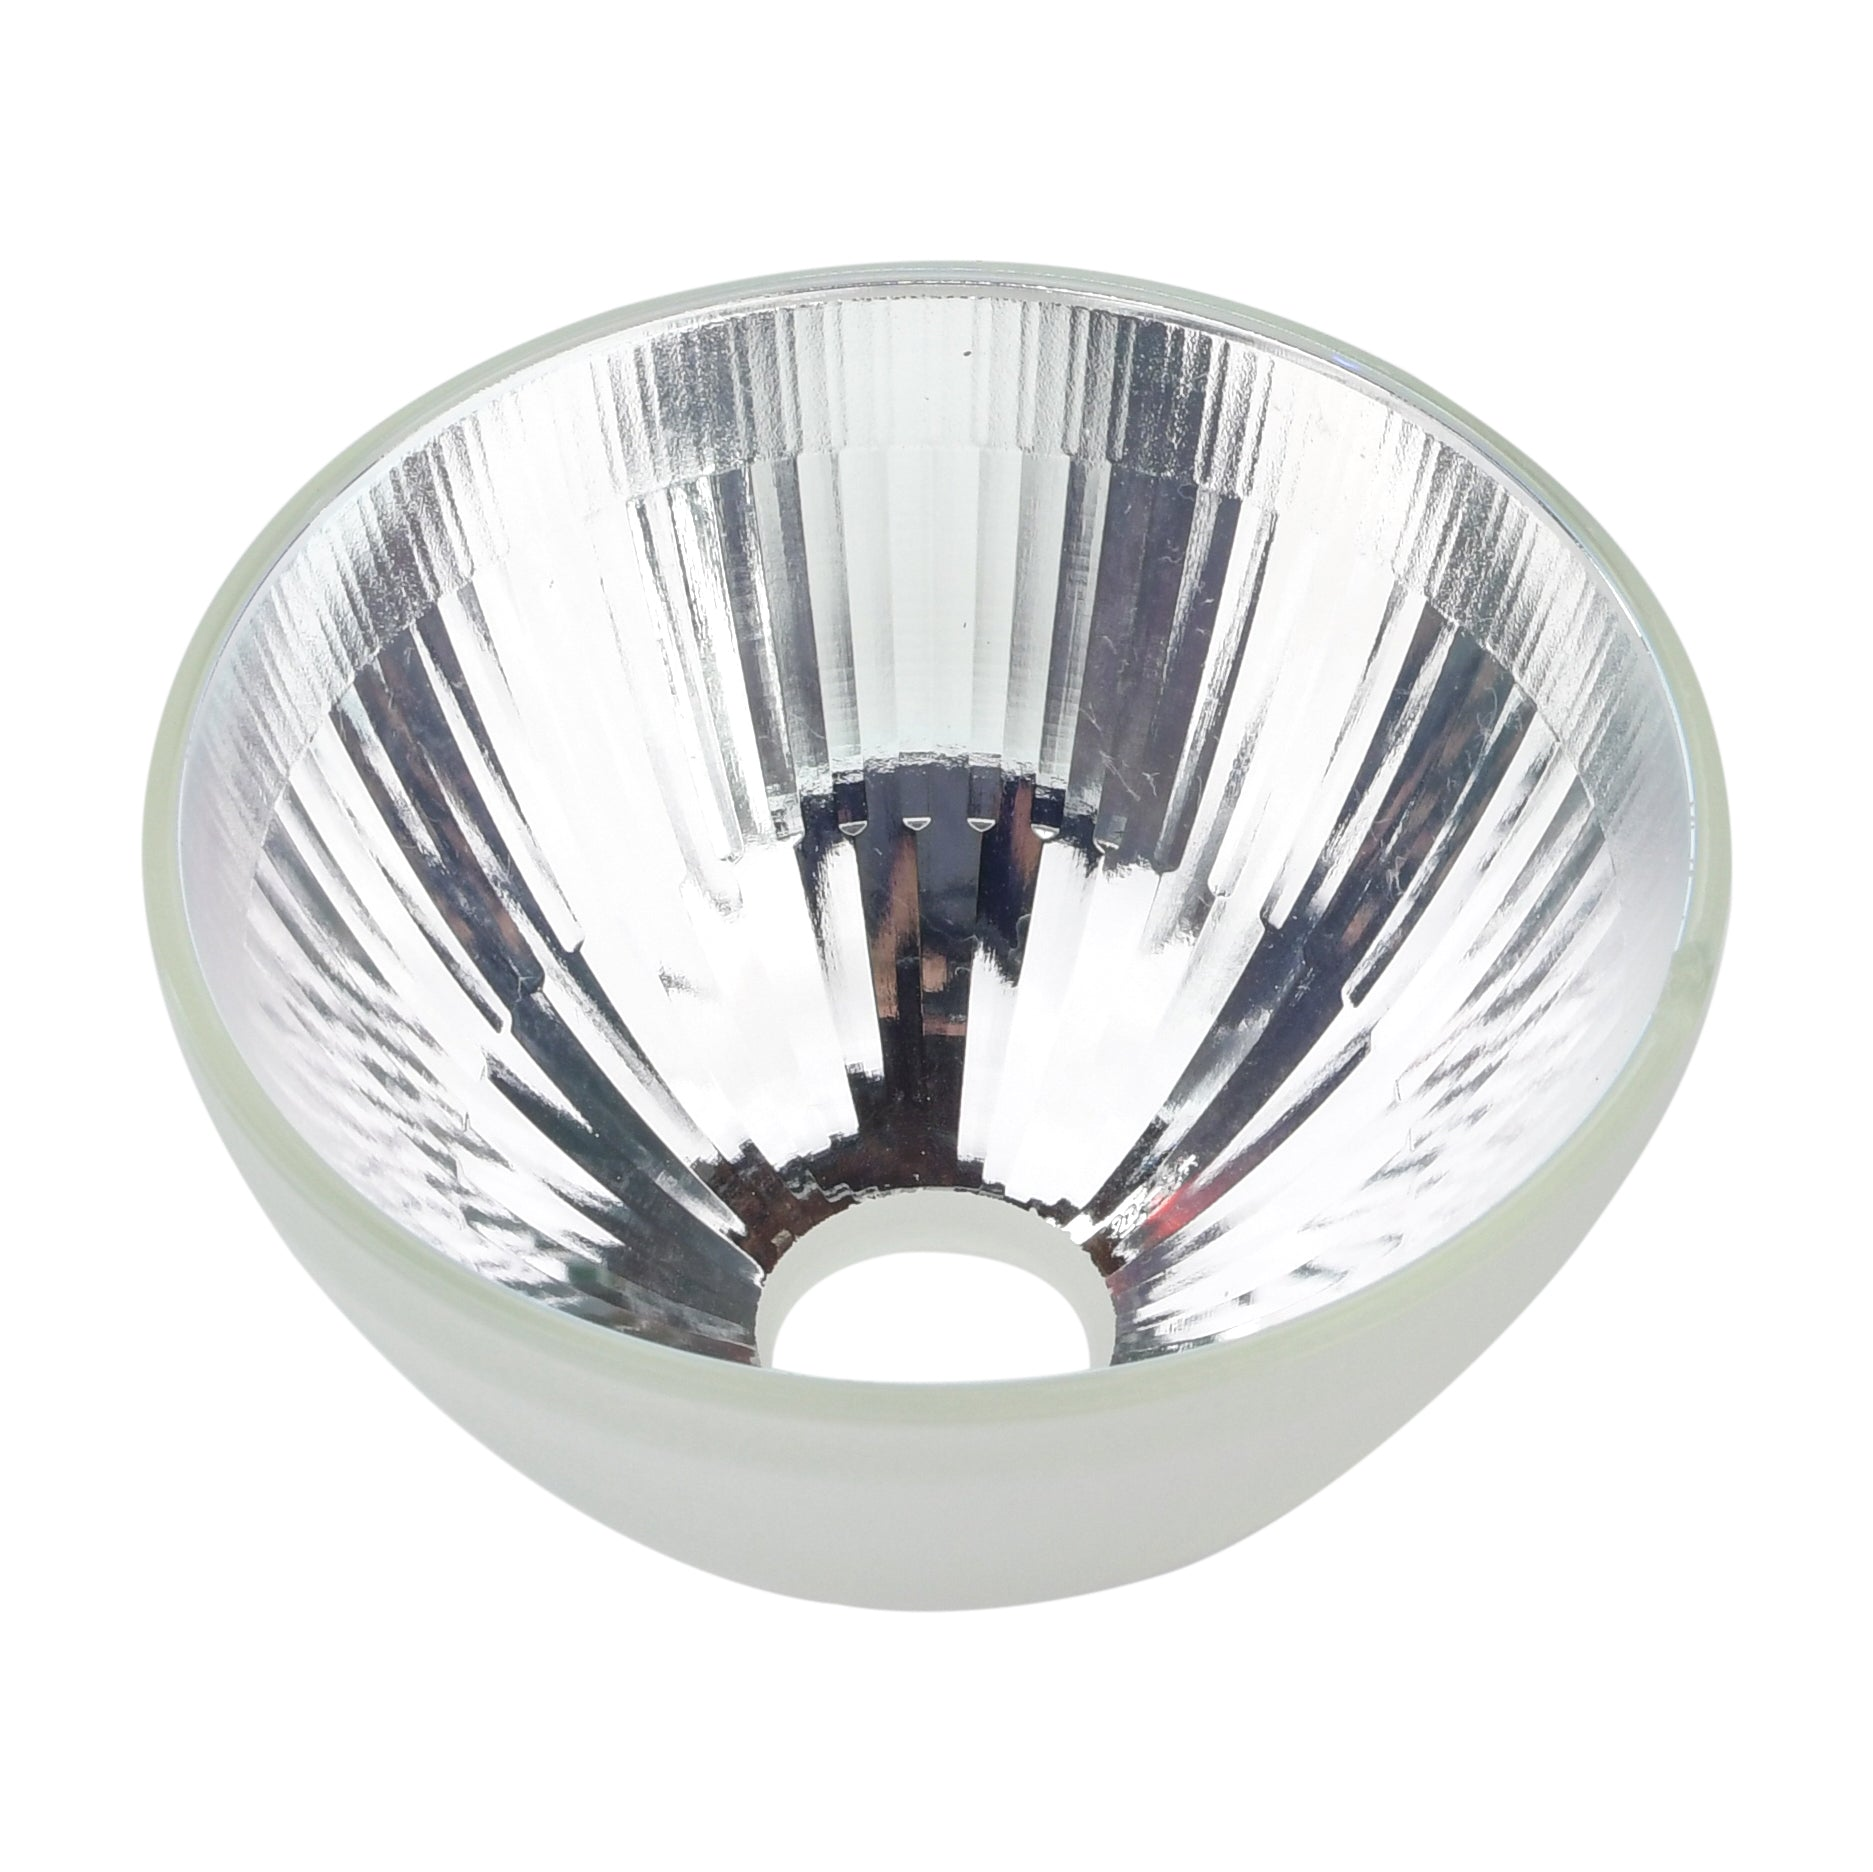 800W Source 4 Reflector